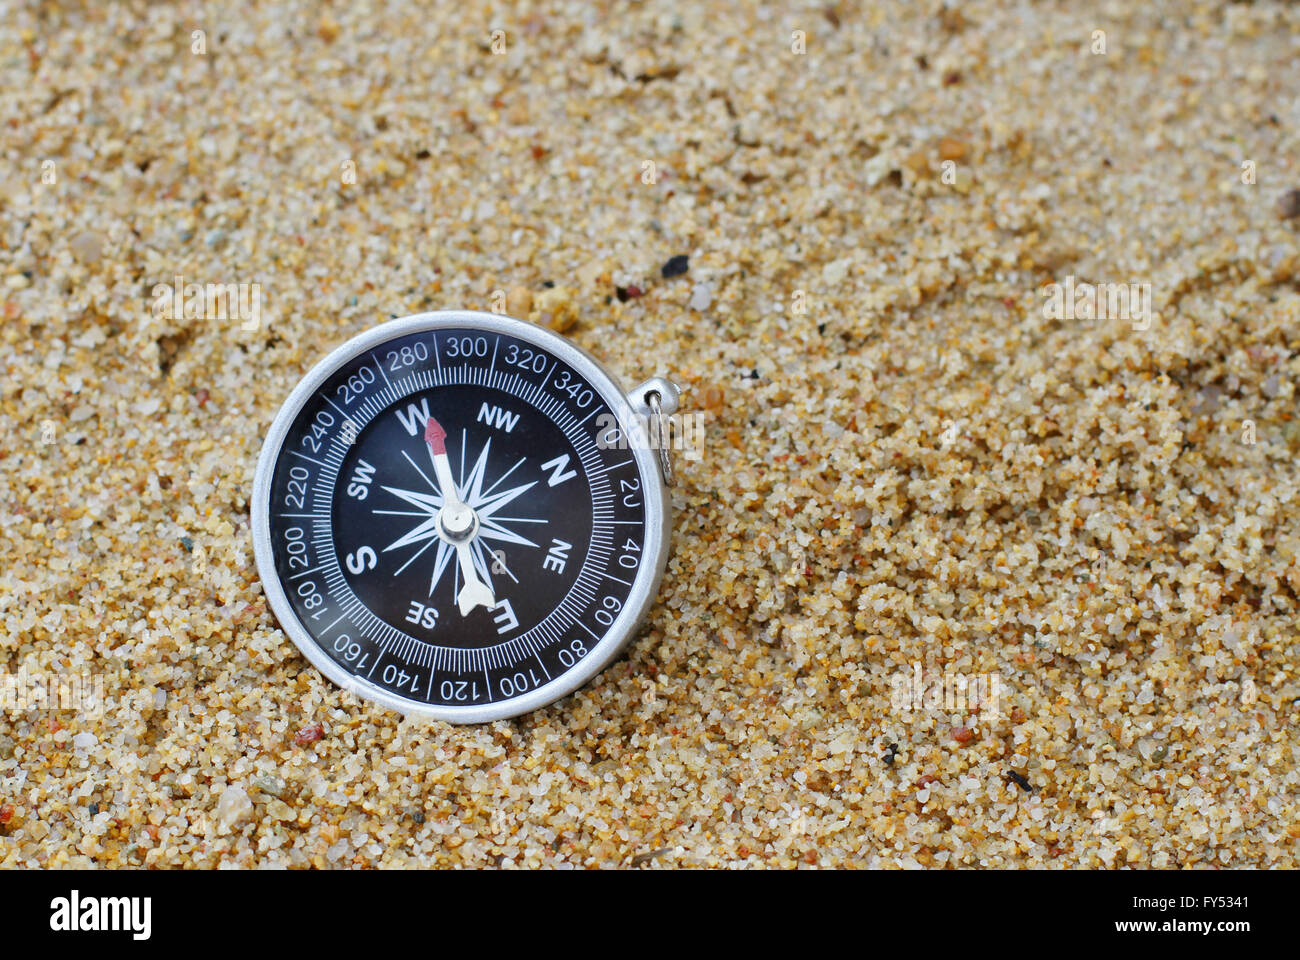 An old style compass pointing west resting on a sandy beach. - Stock Image